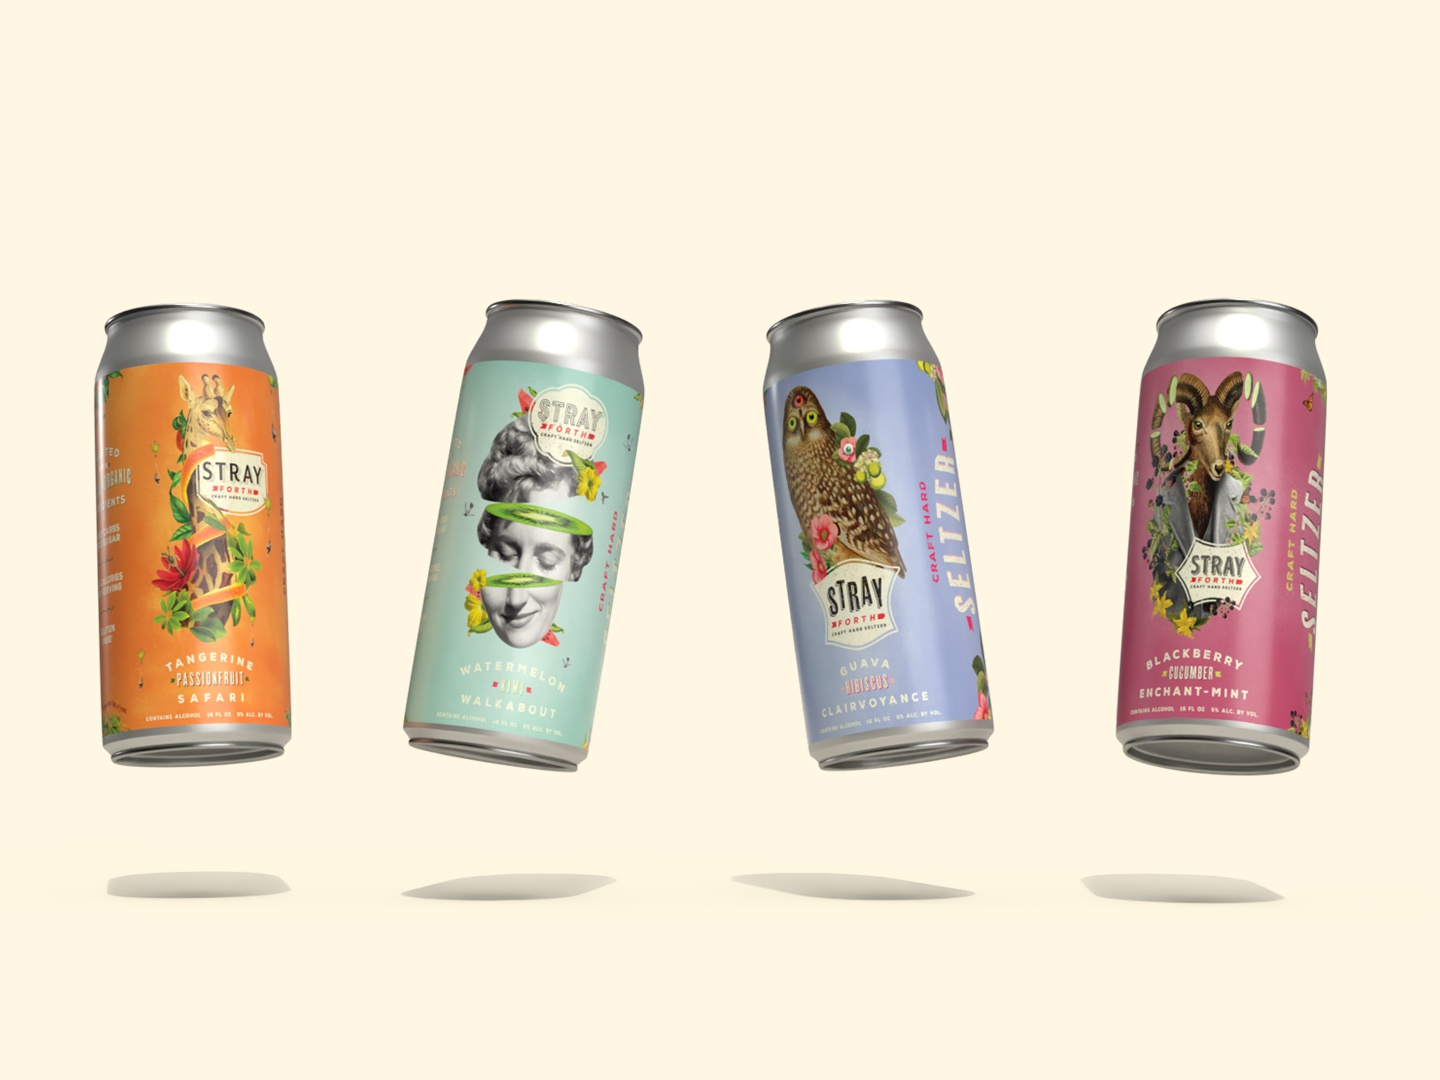 Stray Forth Craft Hard Seltzer 16oz Cans by Dave Bramson on